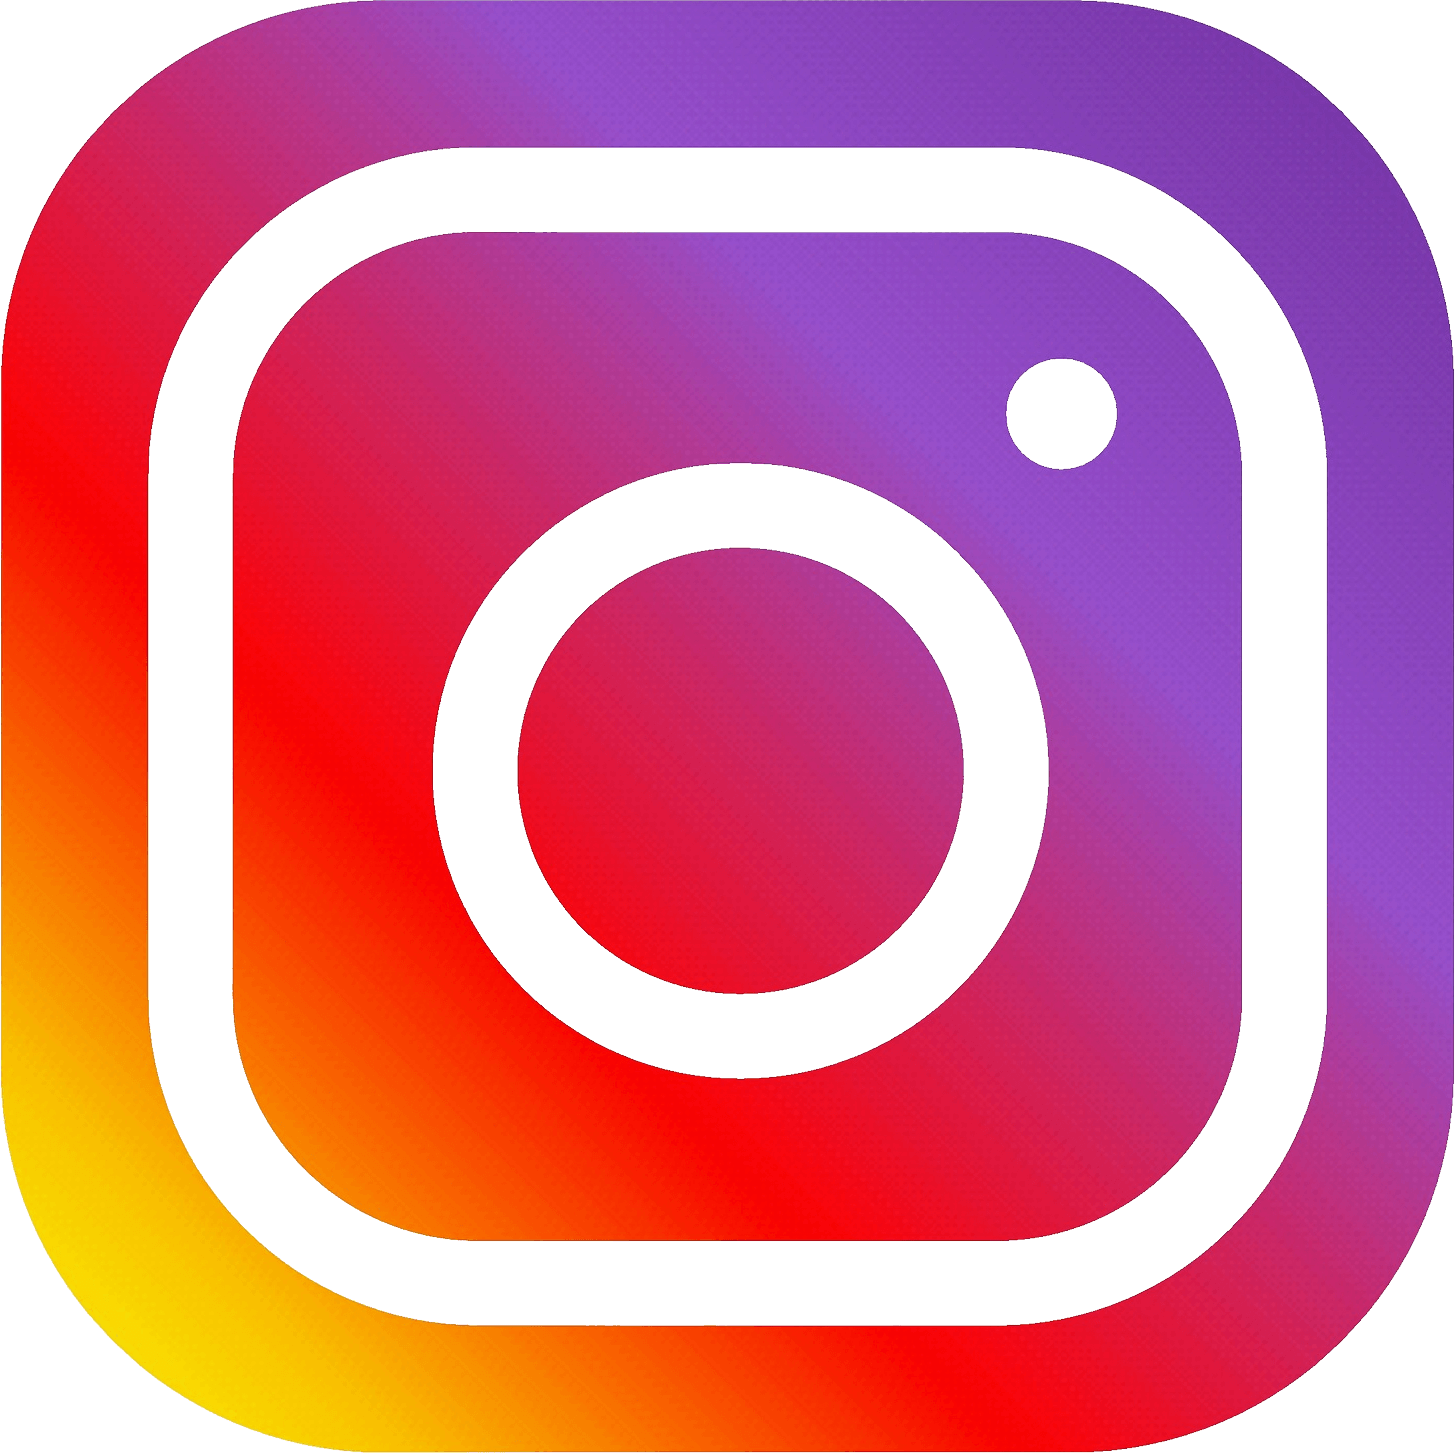 An image logo of instagram for rad disc golf